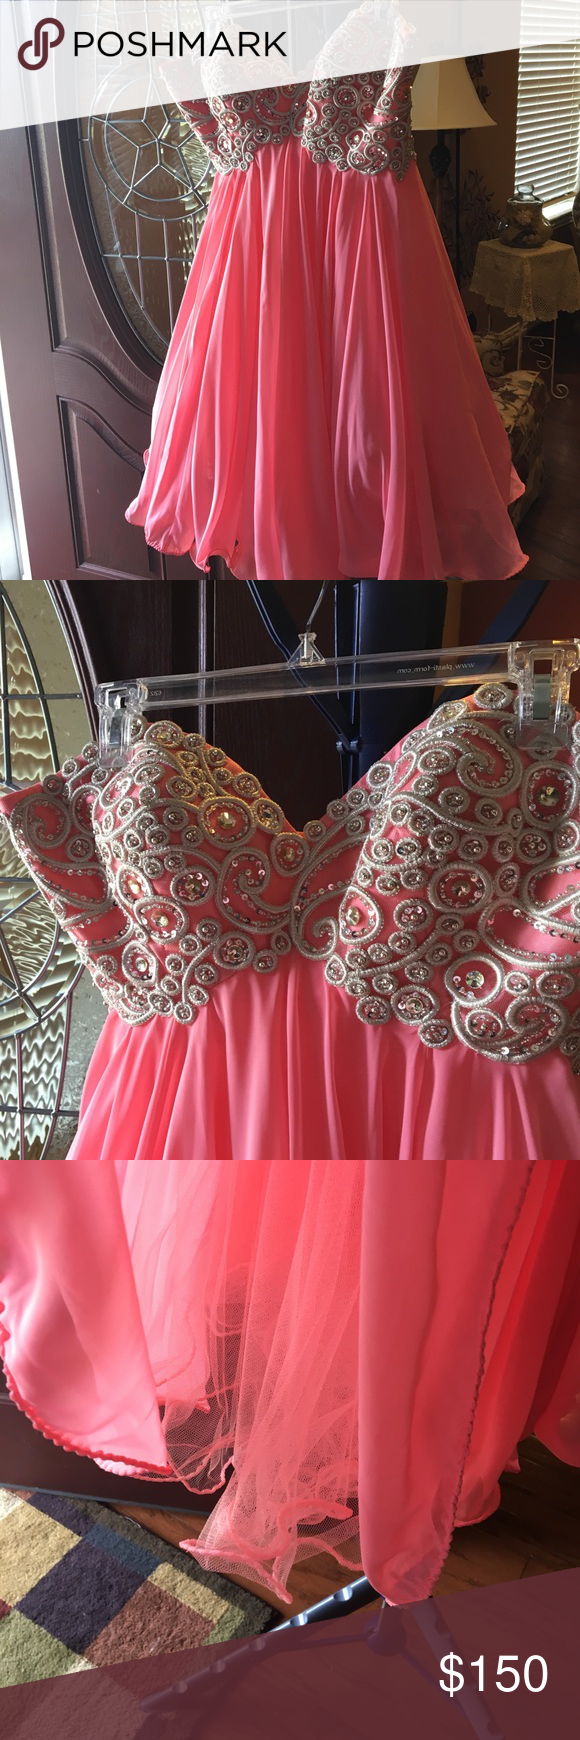 Prom dress sz salmon color salmon color prom and layering